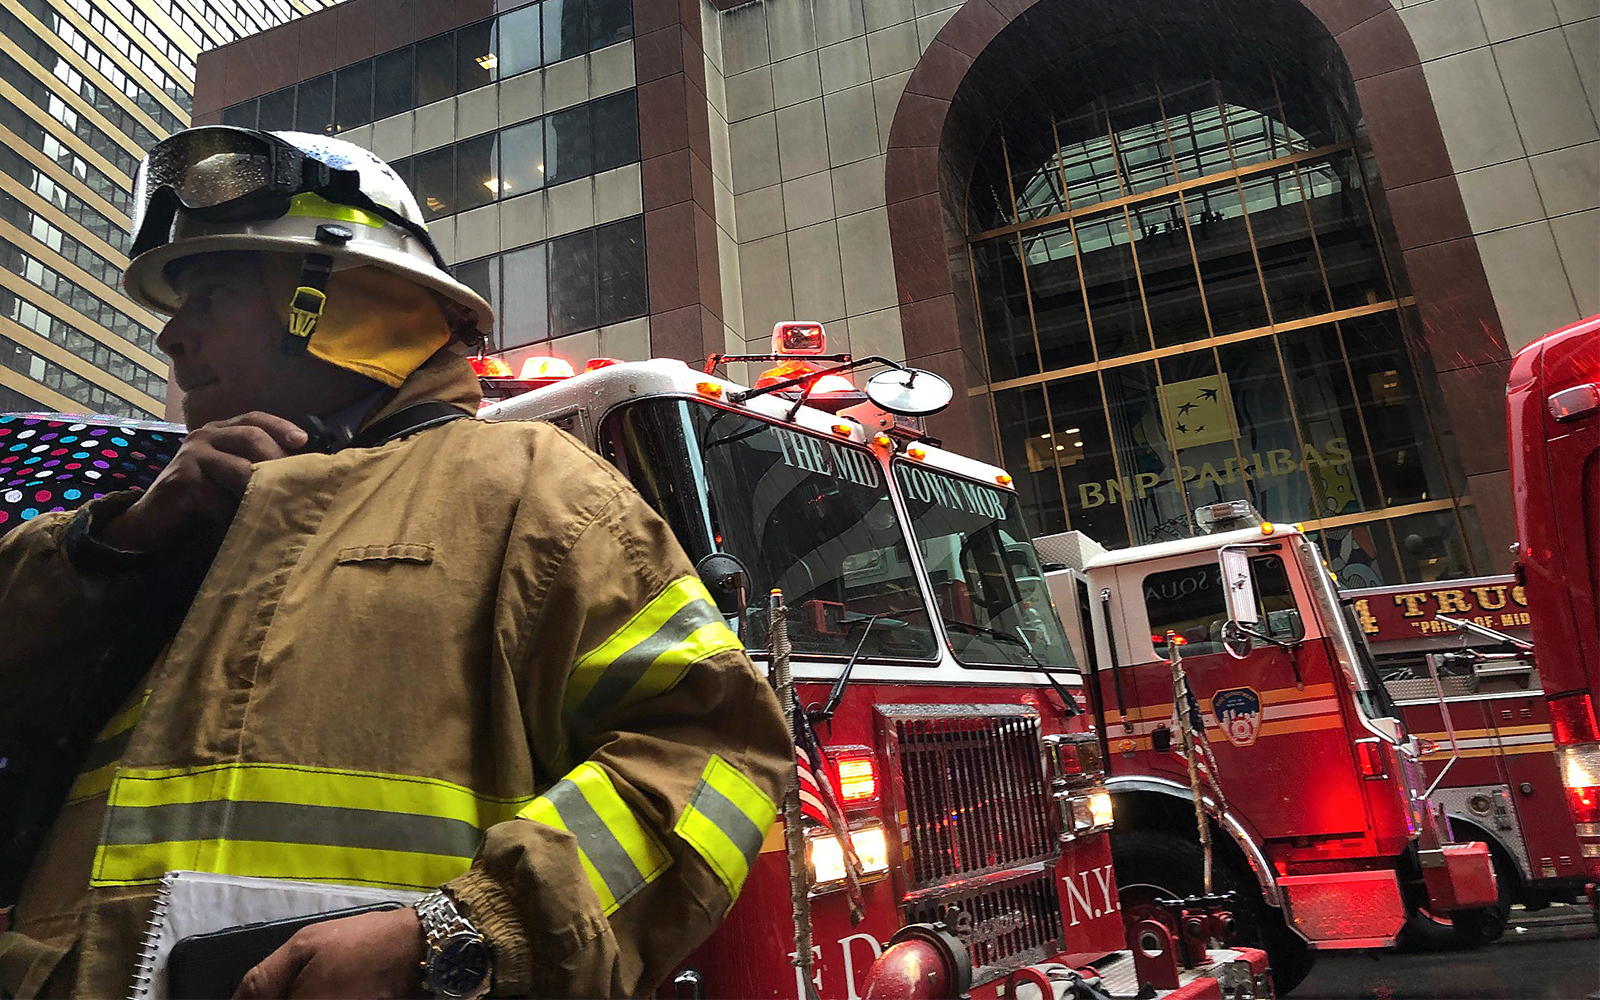 Helicopter crashes into Manhattan building